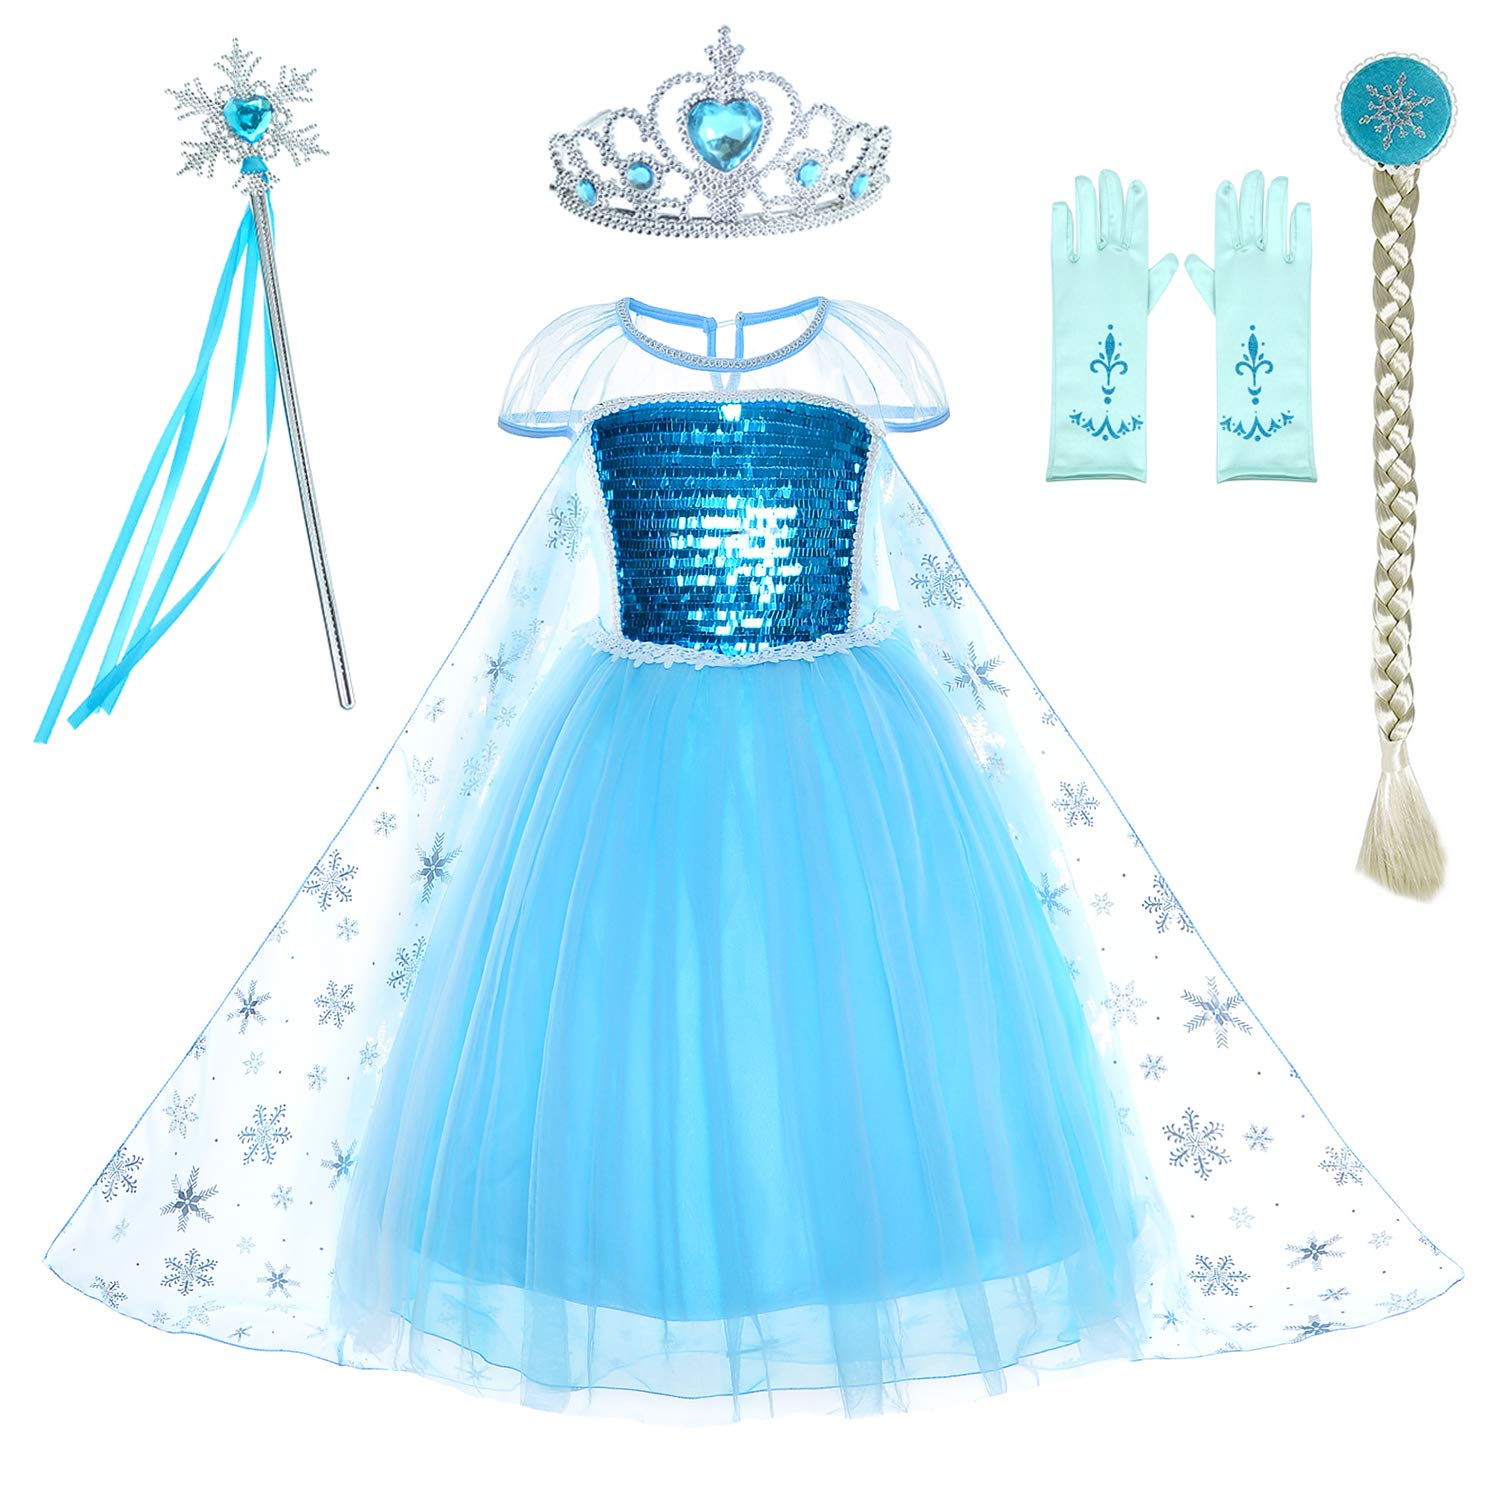 Snow Queen Princess Elsa Costumes Birthday Dress Up For Little Girls with Crown,Mace,Gloves Accessories 6-7 Years(130cm)